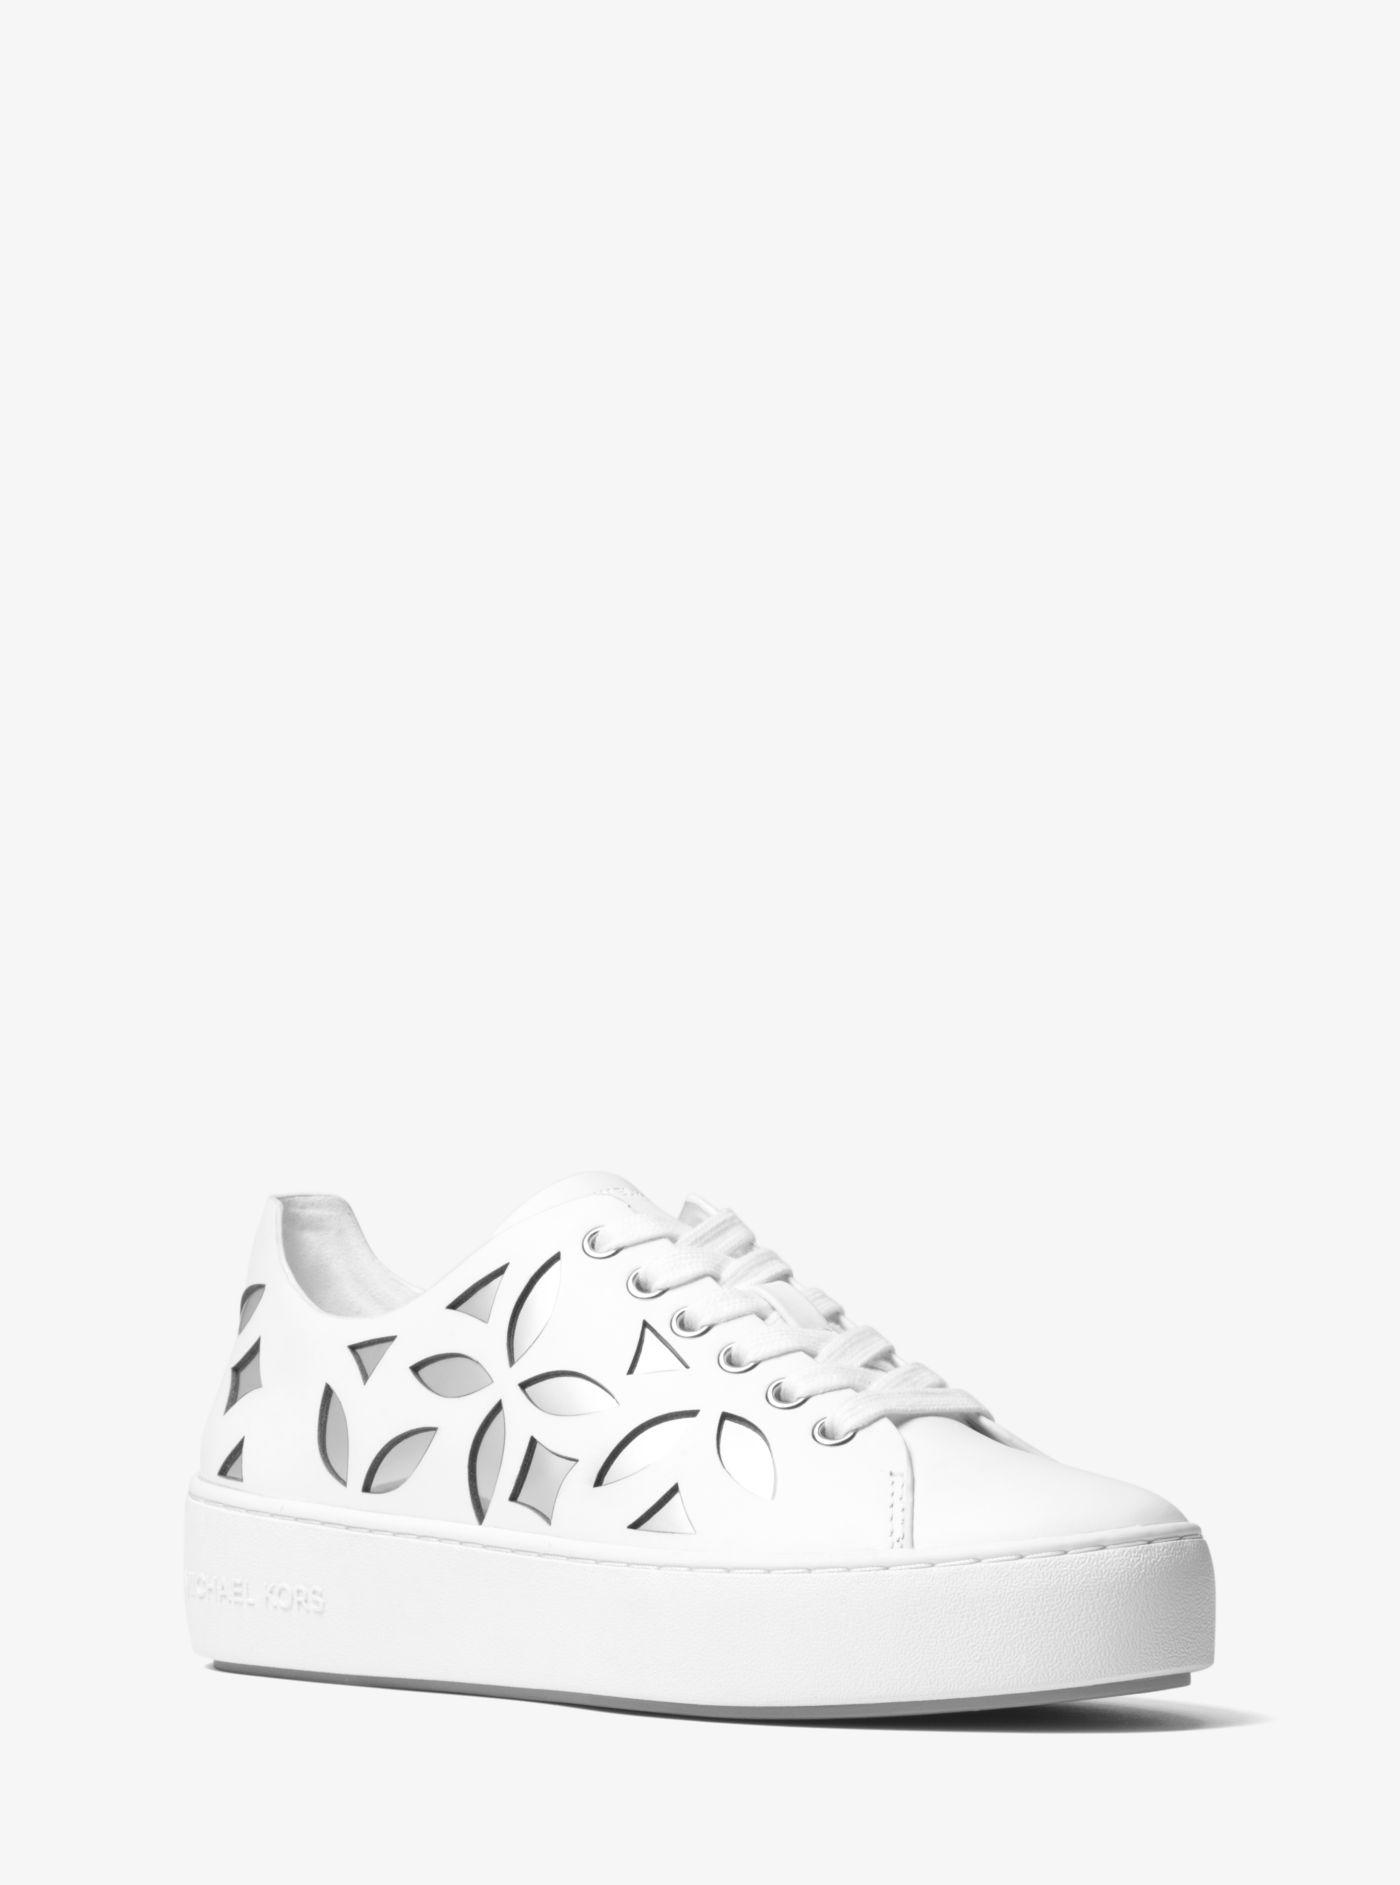 MICHAEL Michael Kors Mimi Perforated Leather Lace Up Sneakers cj815